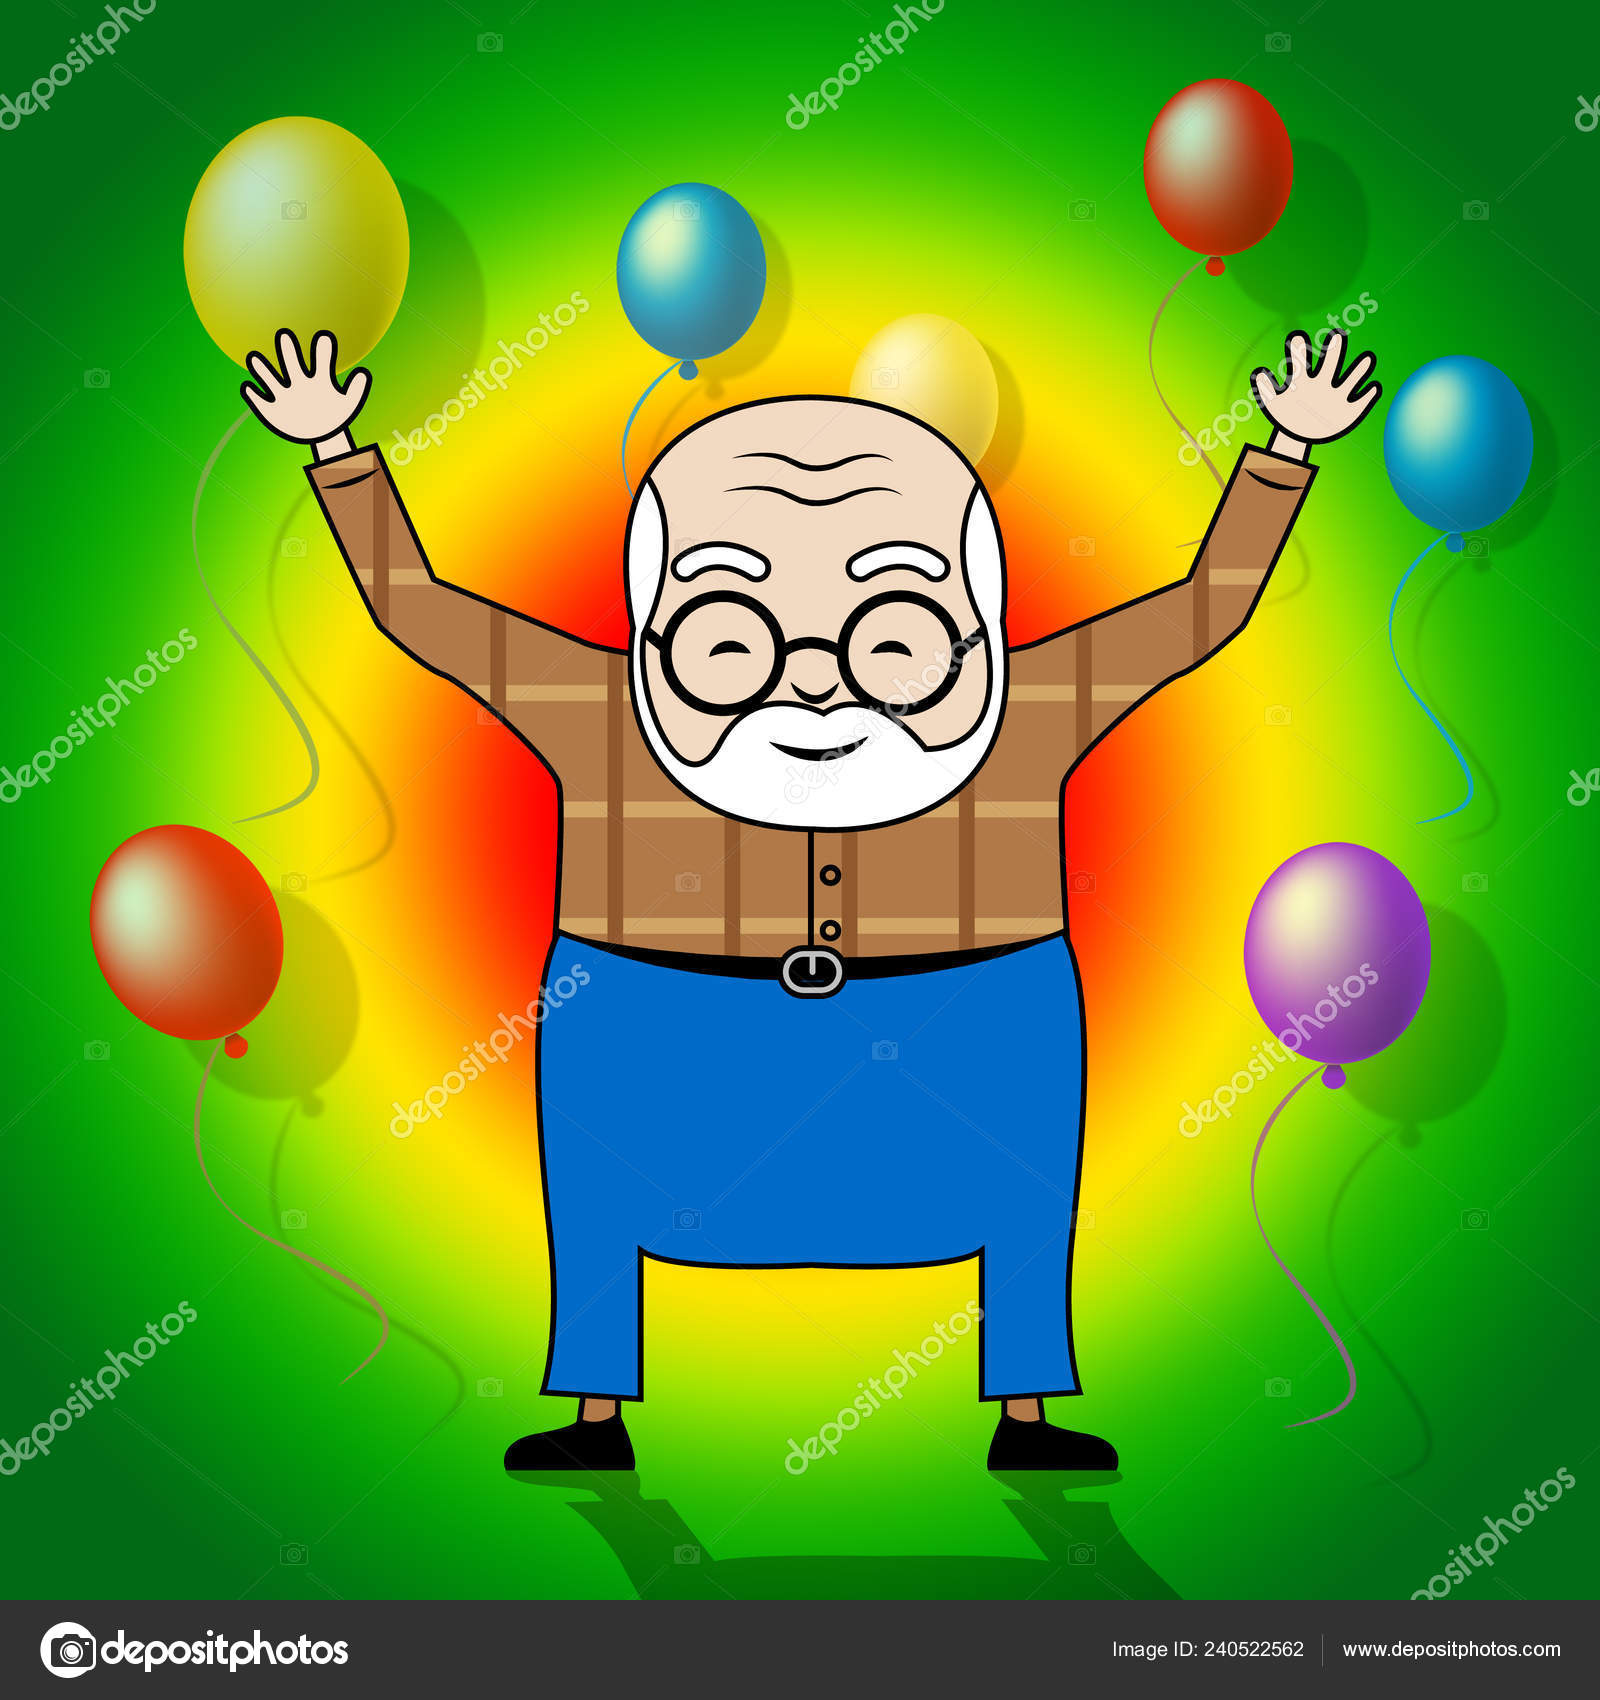 Happy Birthday Grandpa Balloons Surprise Greeting Grandad Best Wishes Grandfather Stock Photo